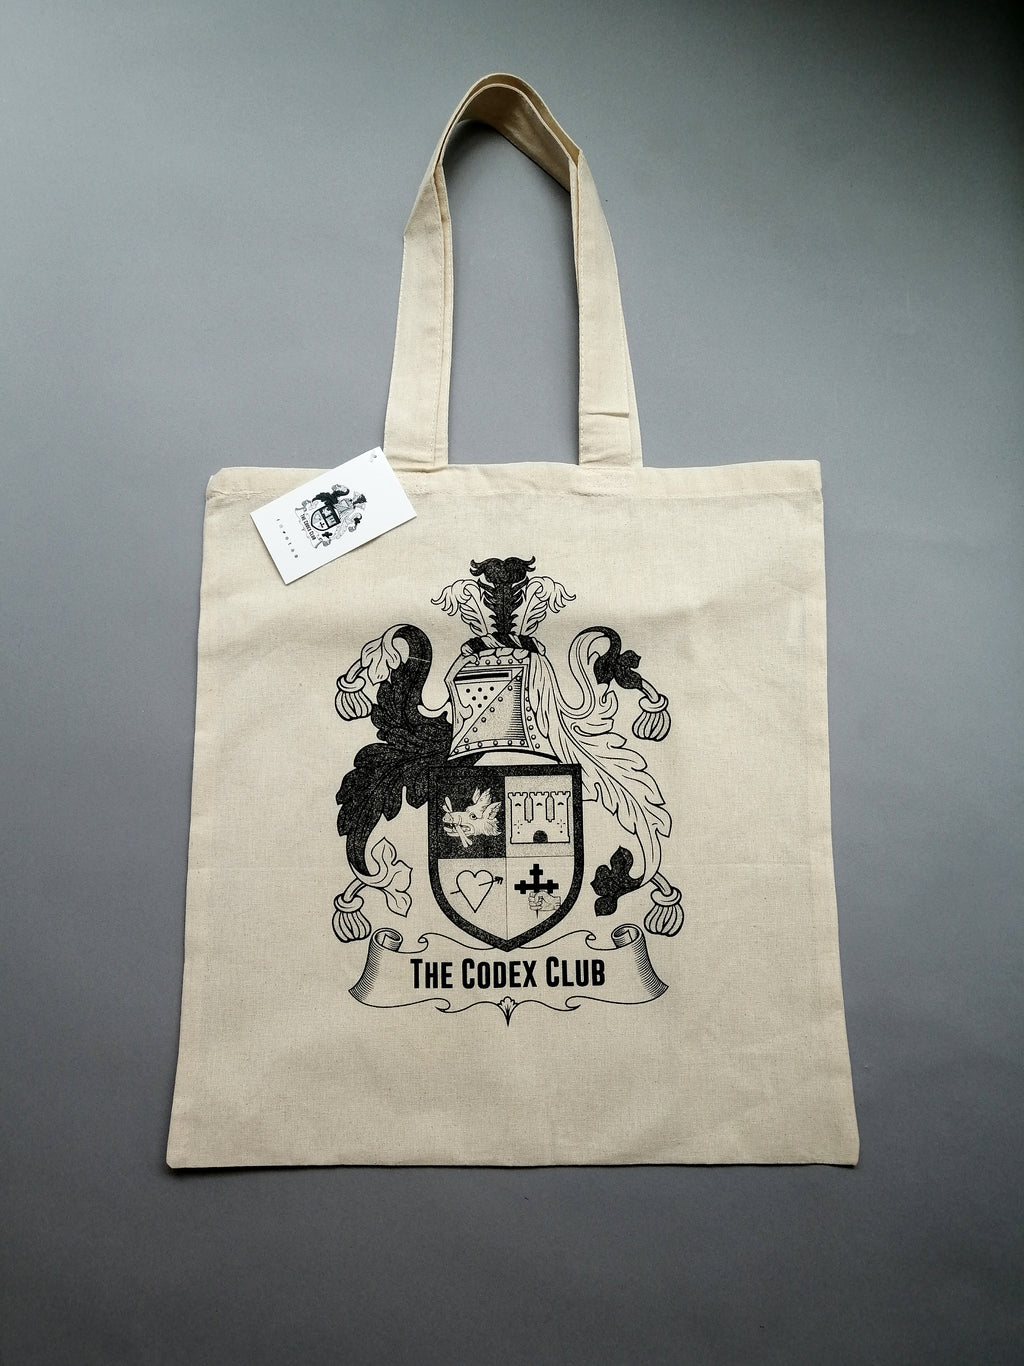 The Codex Club Tote Bag